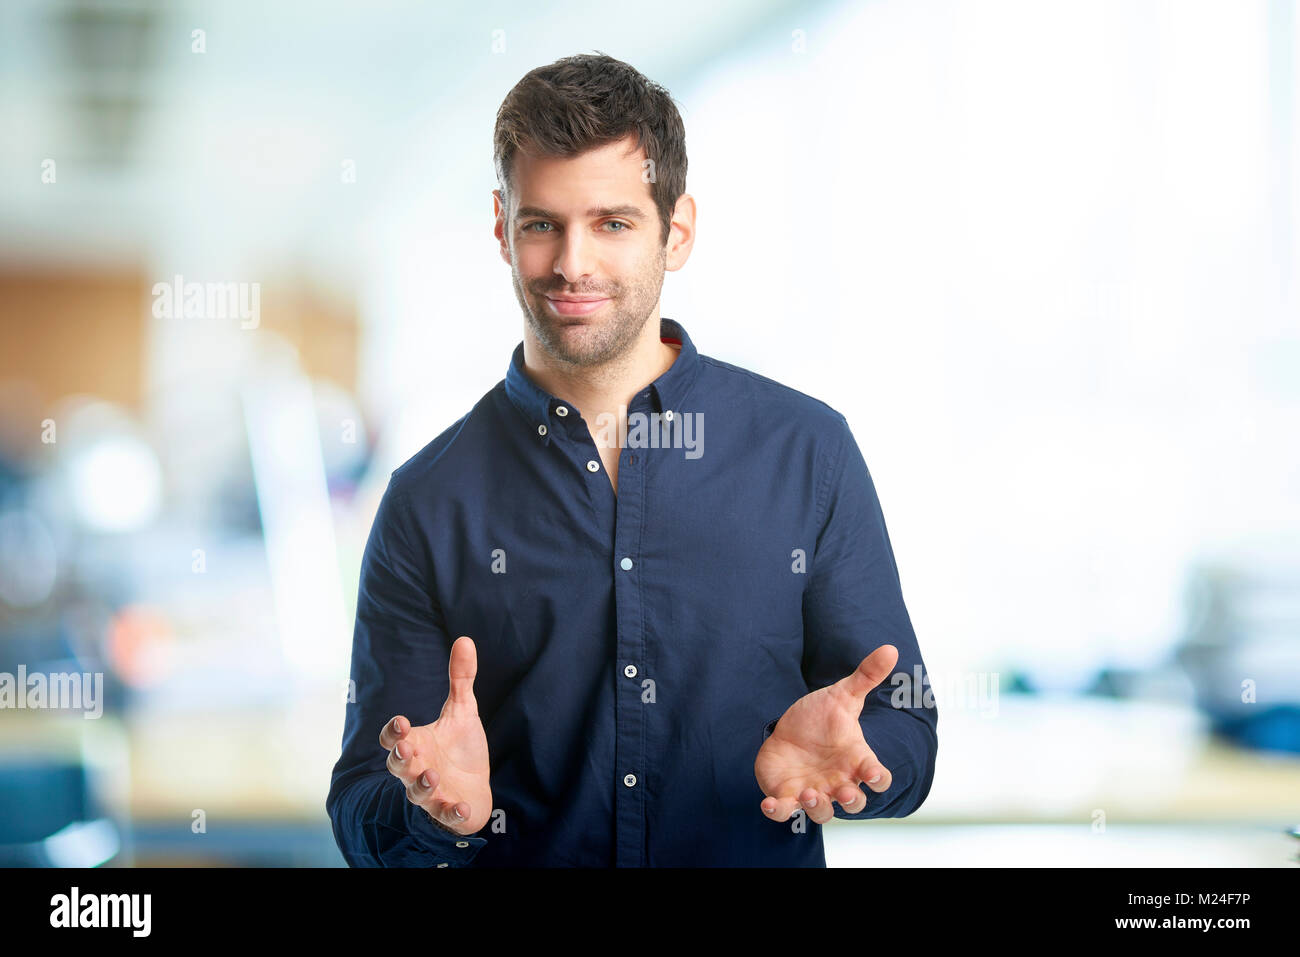 Portrait of smiling young businessman standing with his arms raised at the office. - Stock Image